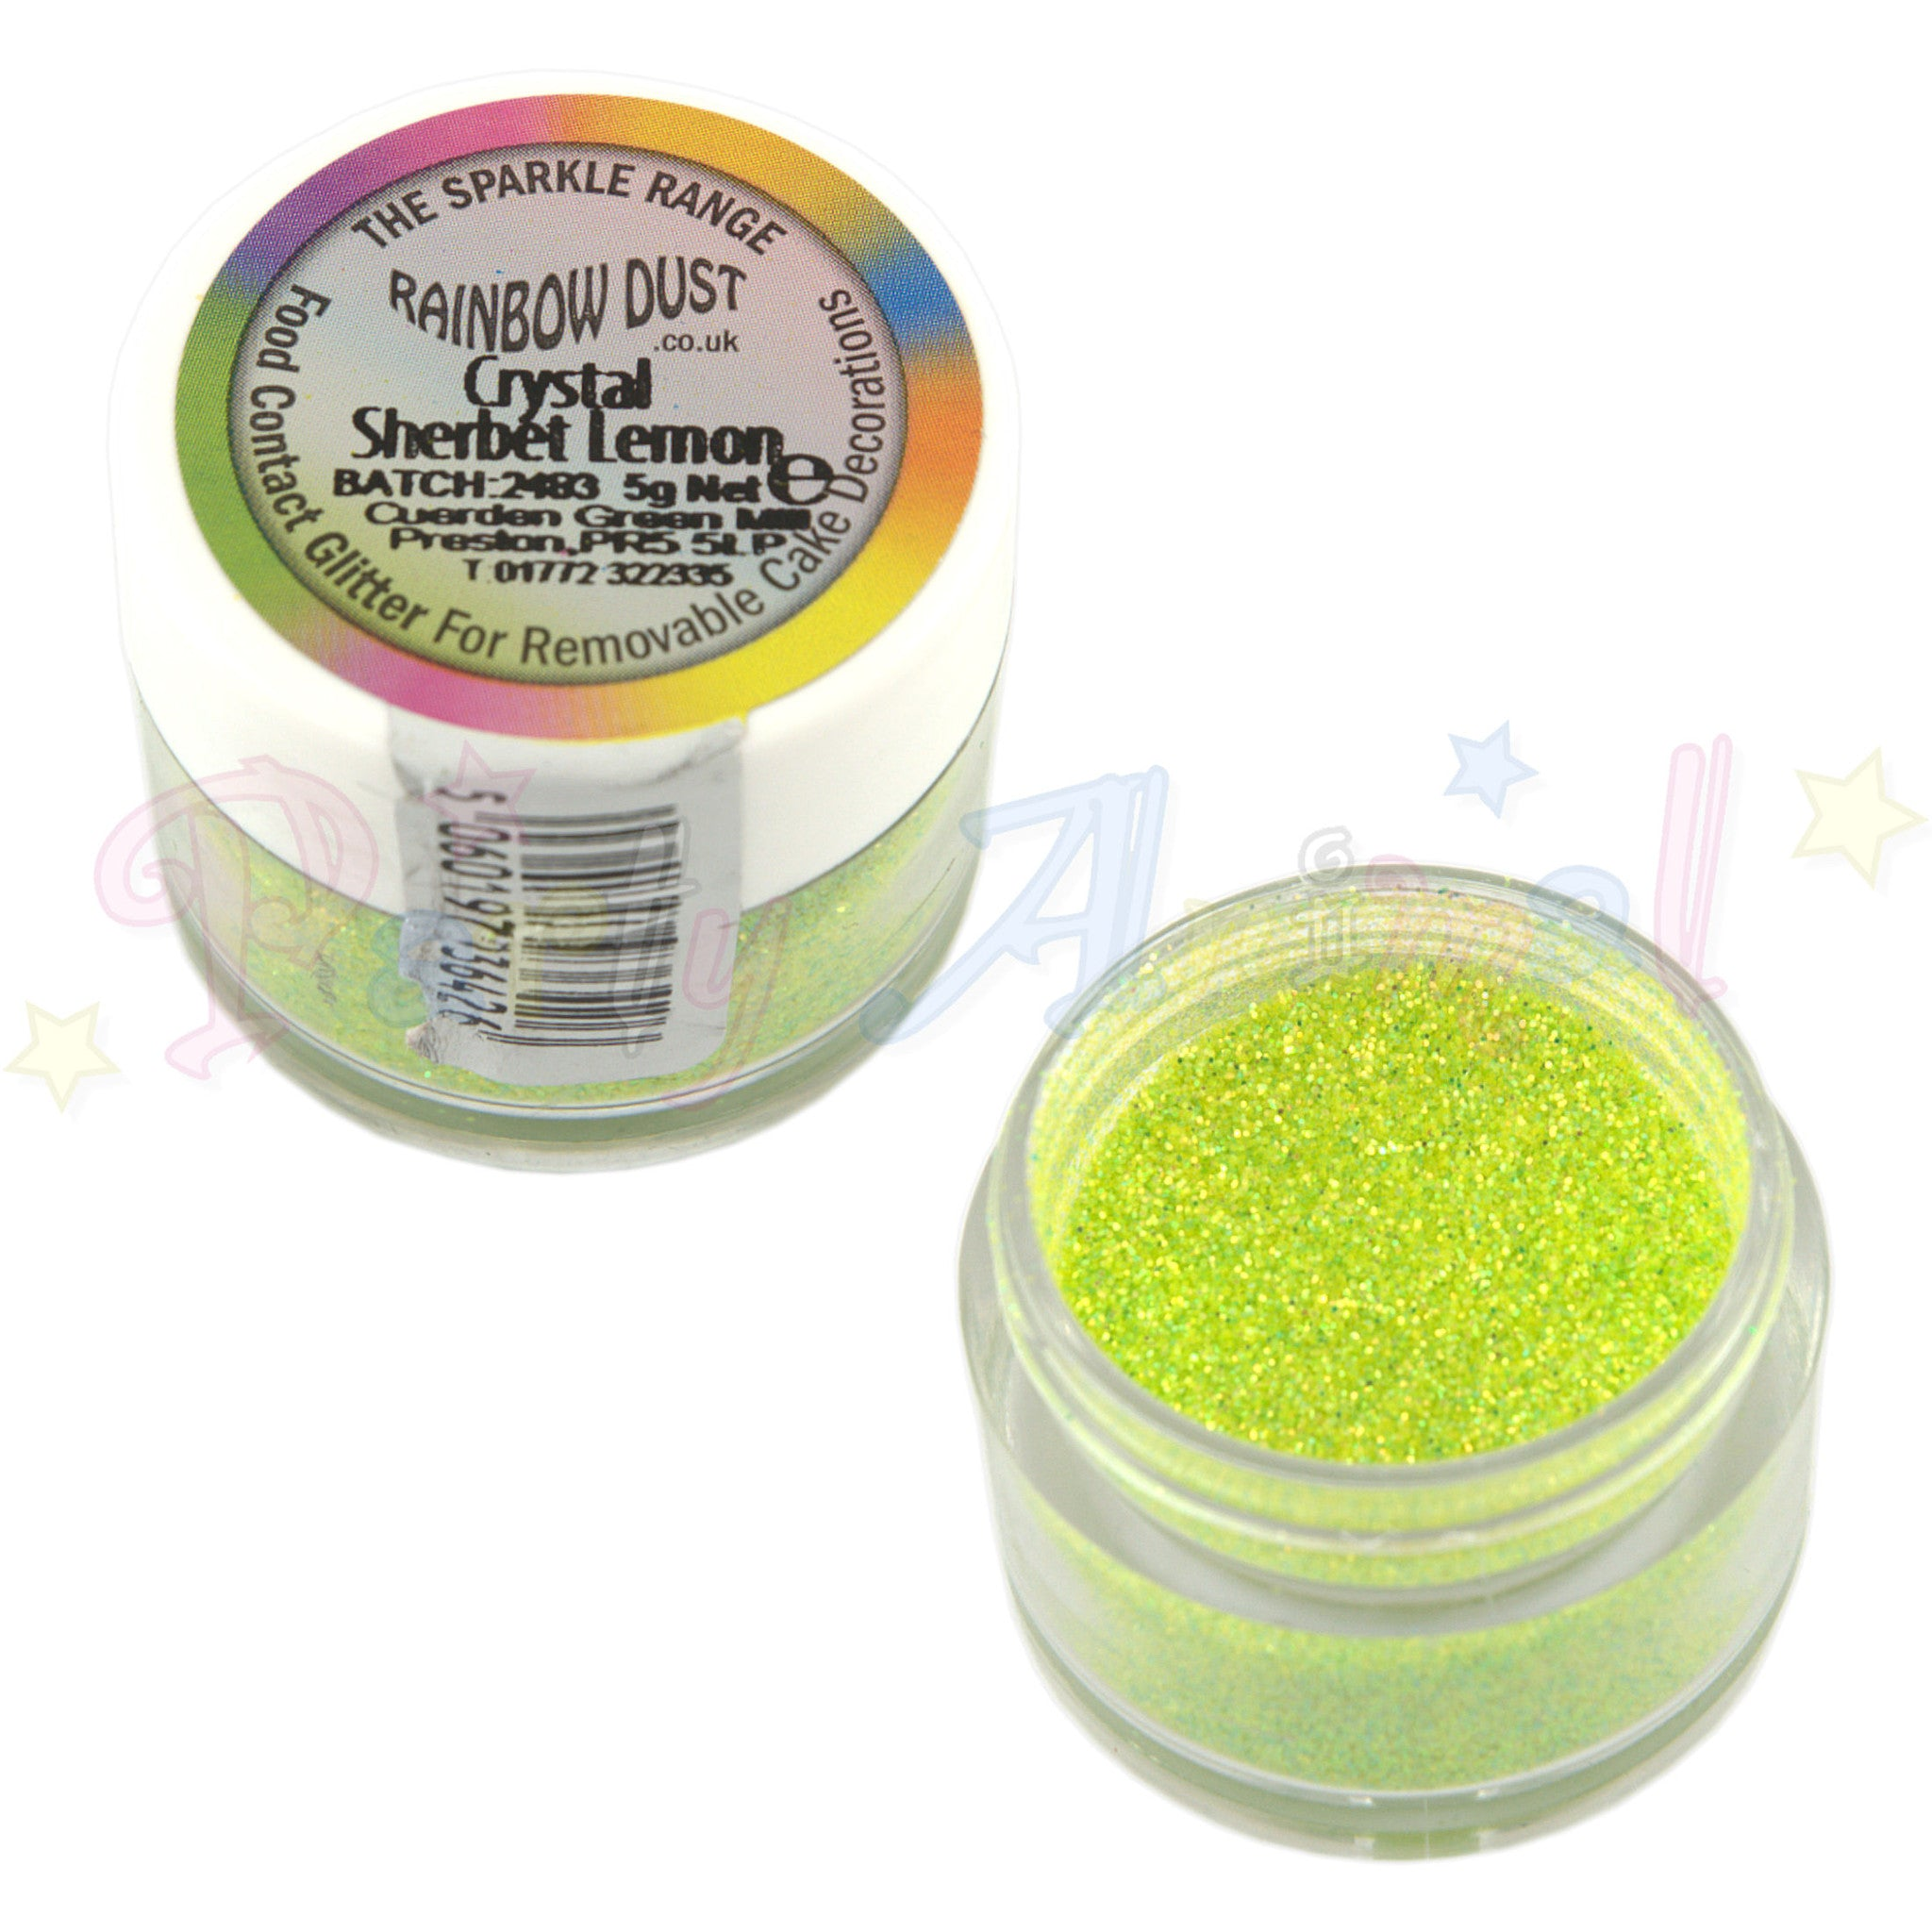 Rainbow Dust Glitter Sparkle Colours - CRYSTAL SHERBET LEMON